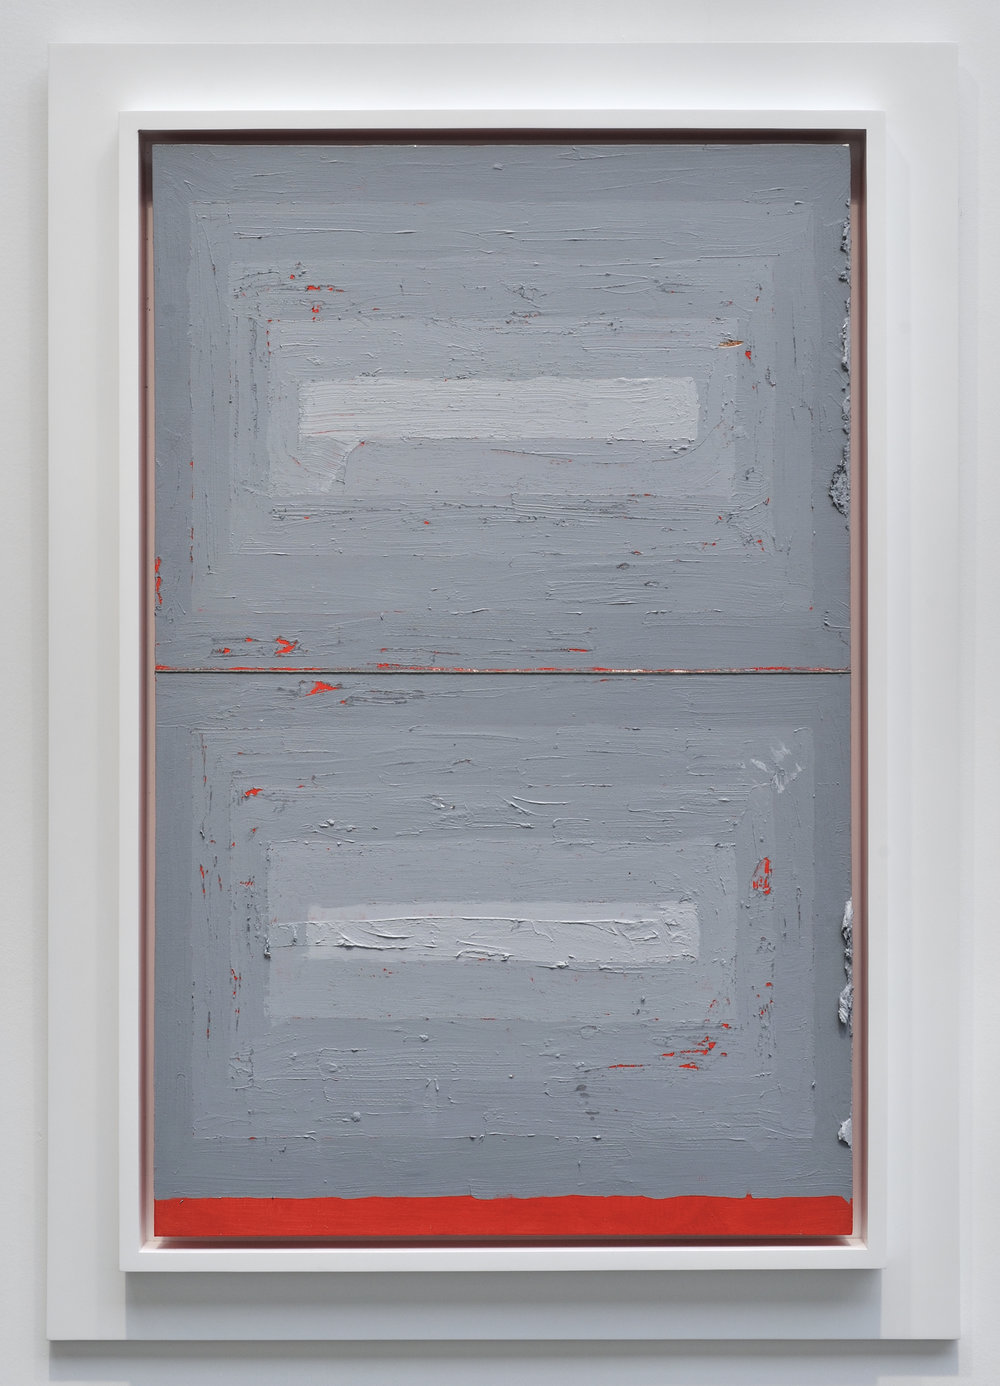 Julian Hoeber, Execution Changes #64 (HS, Q1, CJ, LC, Q2, CJ, LC), 2012 acrylic and string on panel 122,7 x 84,6 cm - 48 1/4 x 33 1/4 inches (framed)